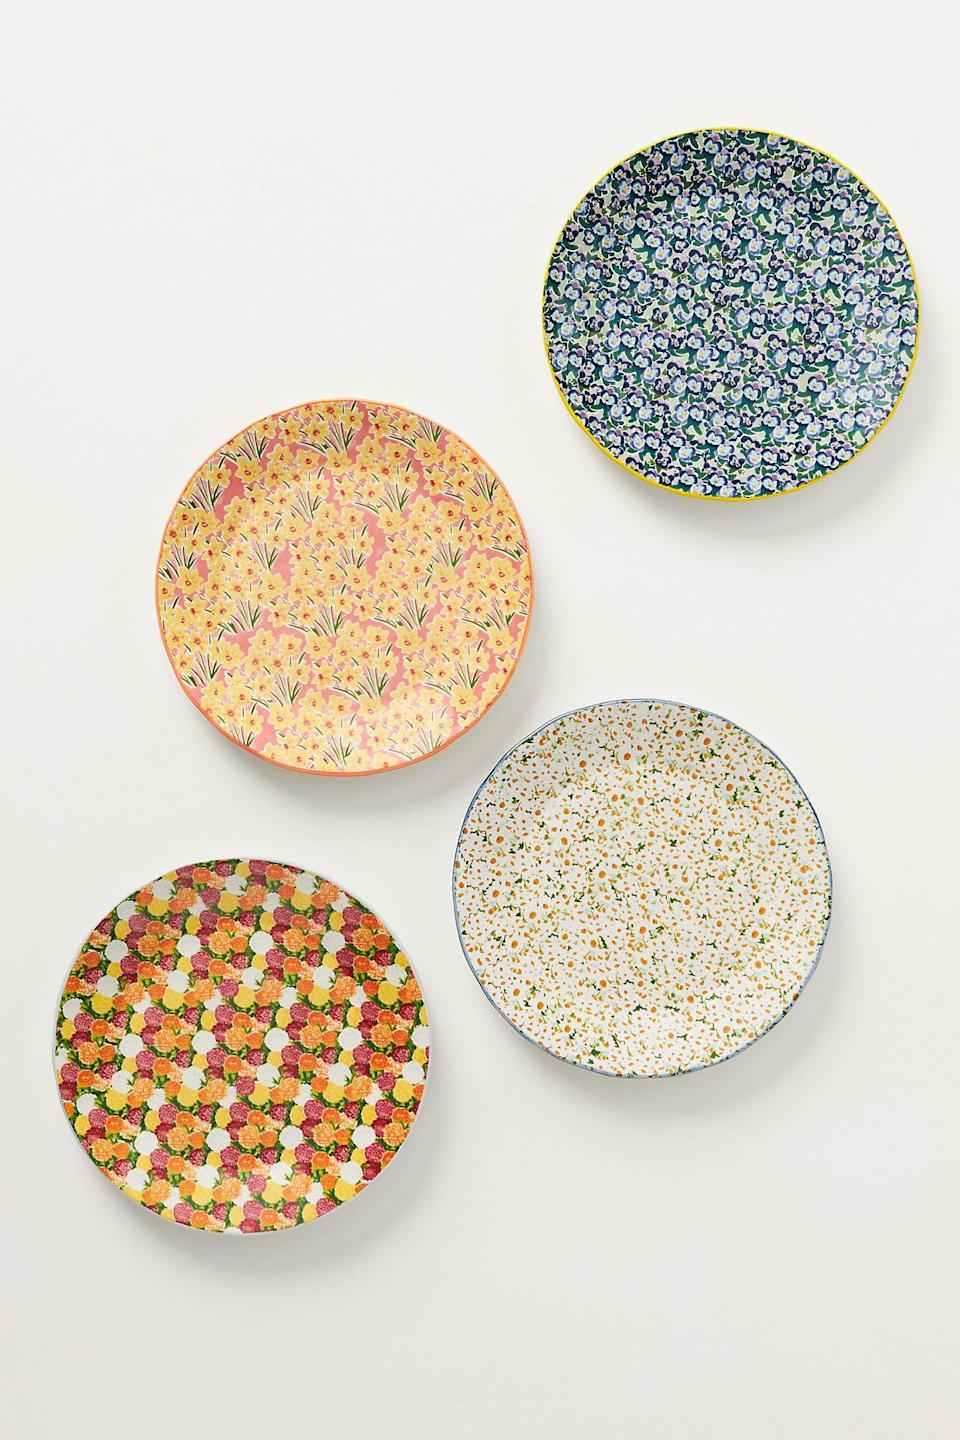 """<br><br><strong>Kimmy Scafuro</strong> Flowerfield Dessert Plate, $, available at <a href=""""https://go.skimresources.com/?id=30283X879131&url=https%3A%2F%2Fwww.anthropologie.com%2Fshop%2Fkimmy-scafuro-flowerfield-dessert-plate"""" rel=""""nofollow noopener"""" target=""""_blank"""" data-ylk=""""slk:Anthropologie"""" class=""""link rapid-noclick-resp"""">Anthropologie</a>"""